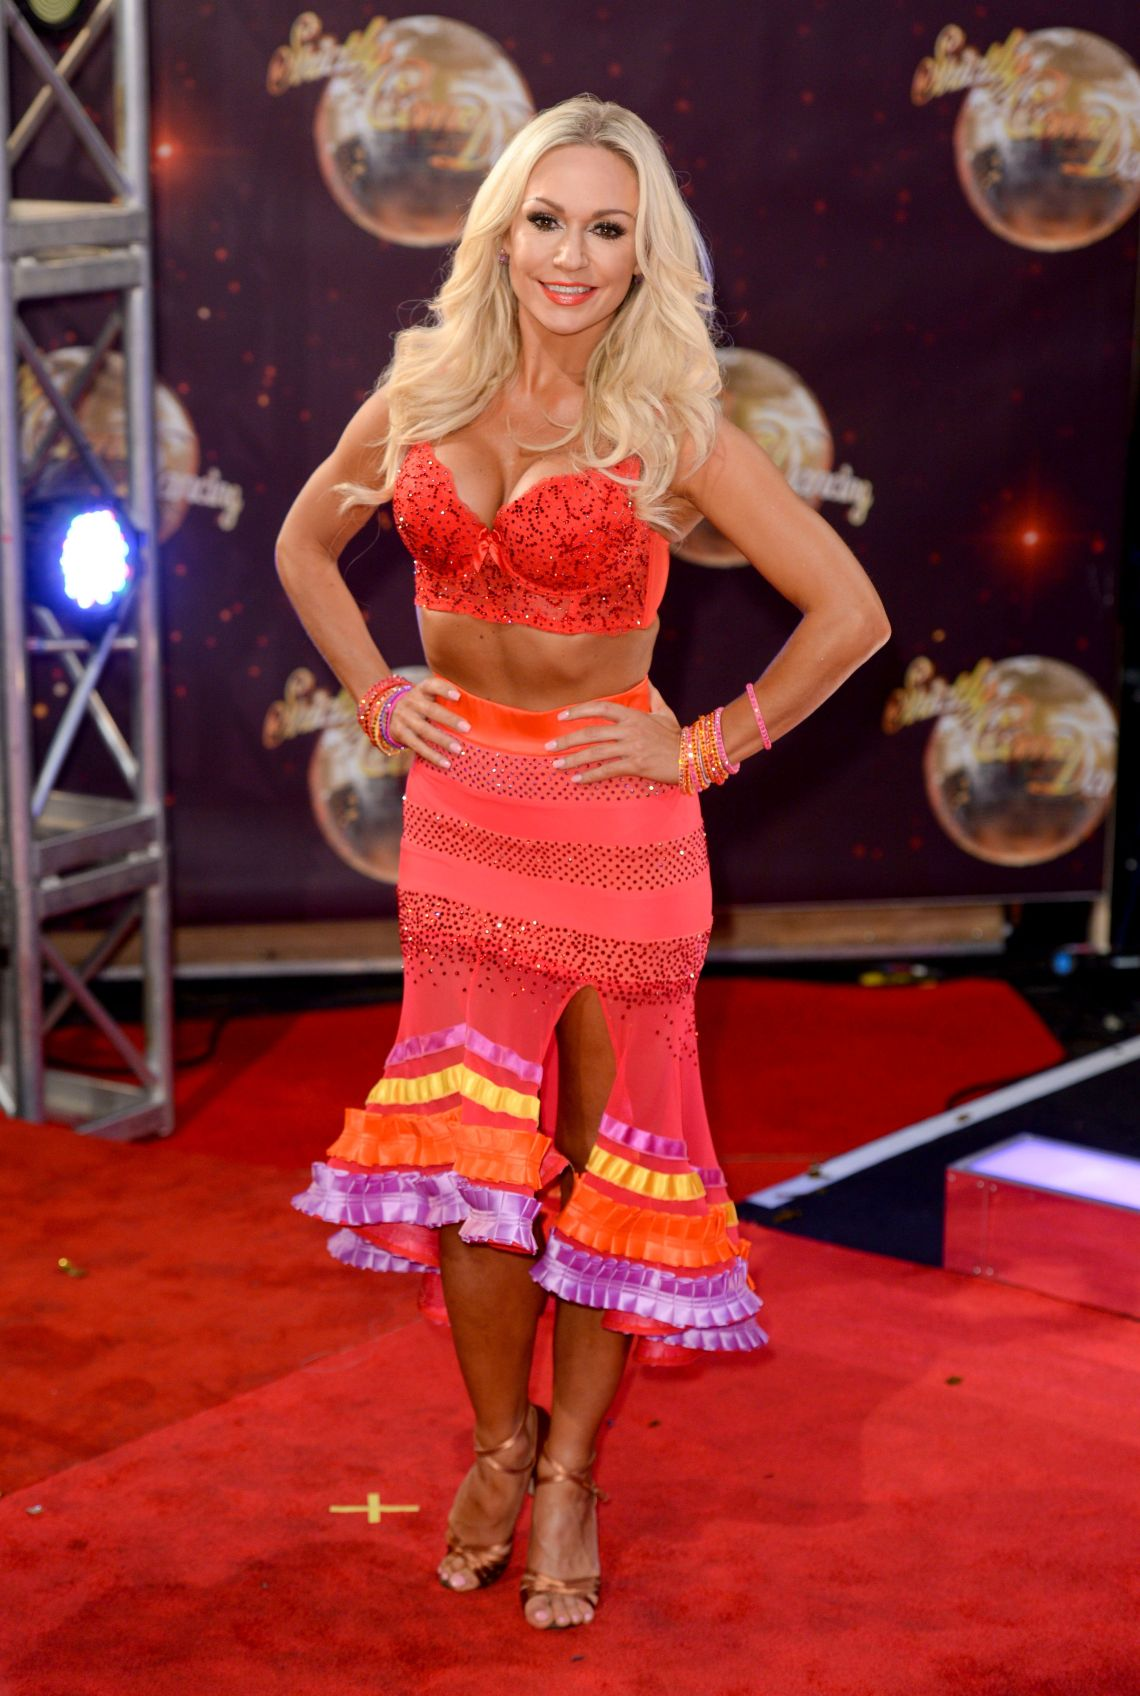 Kristina Rihanoff Accuses 'Strictly Come Dancing' Of Rehashing Old Performance Of Hers